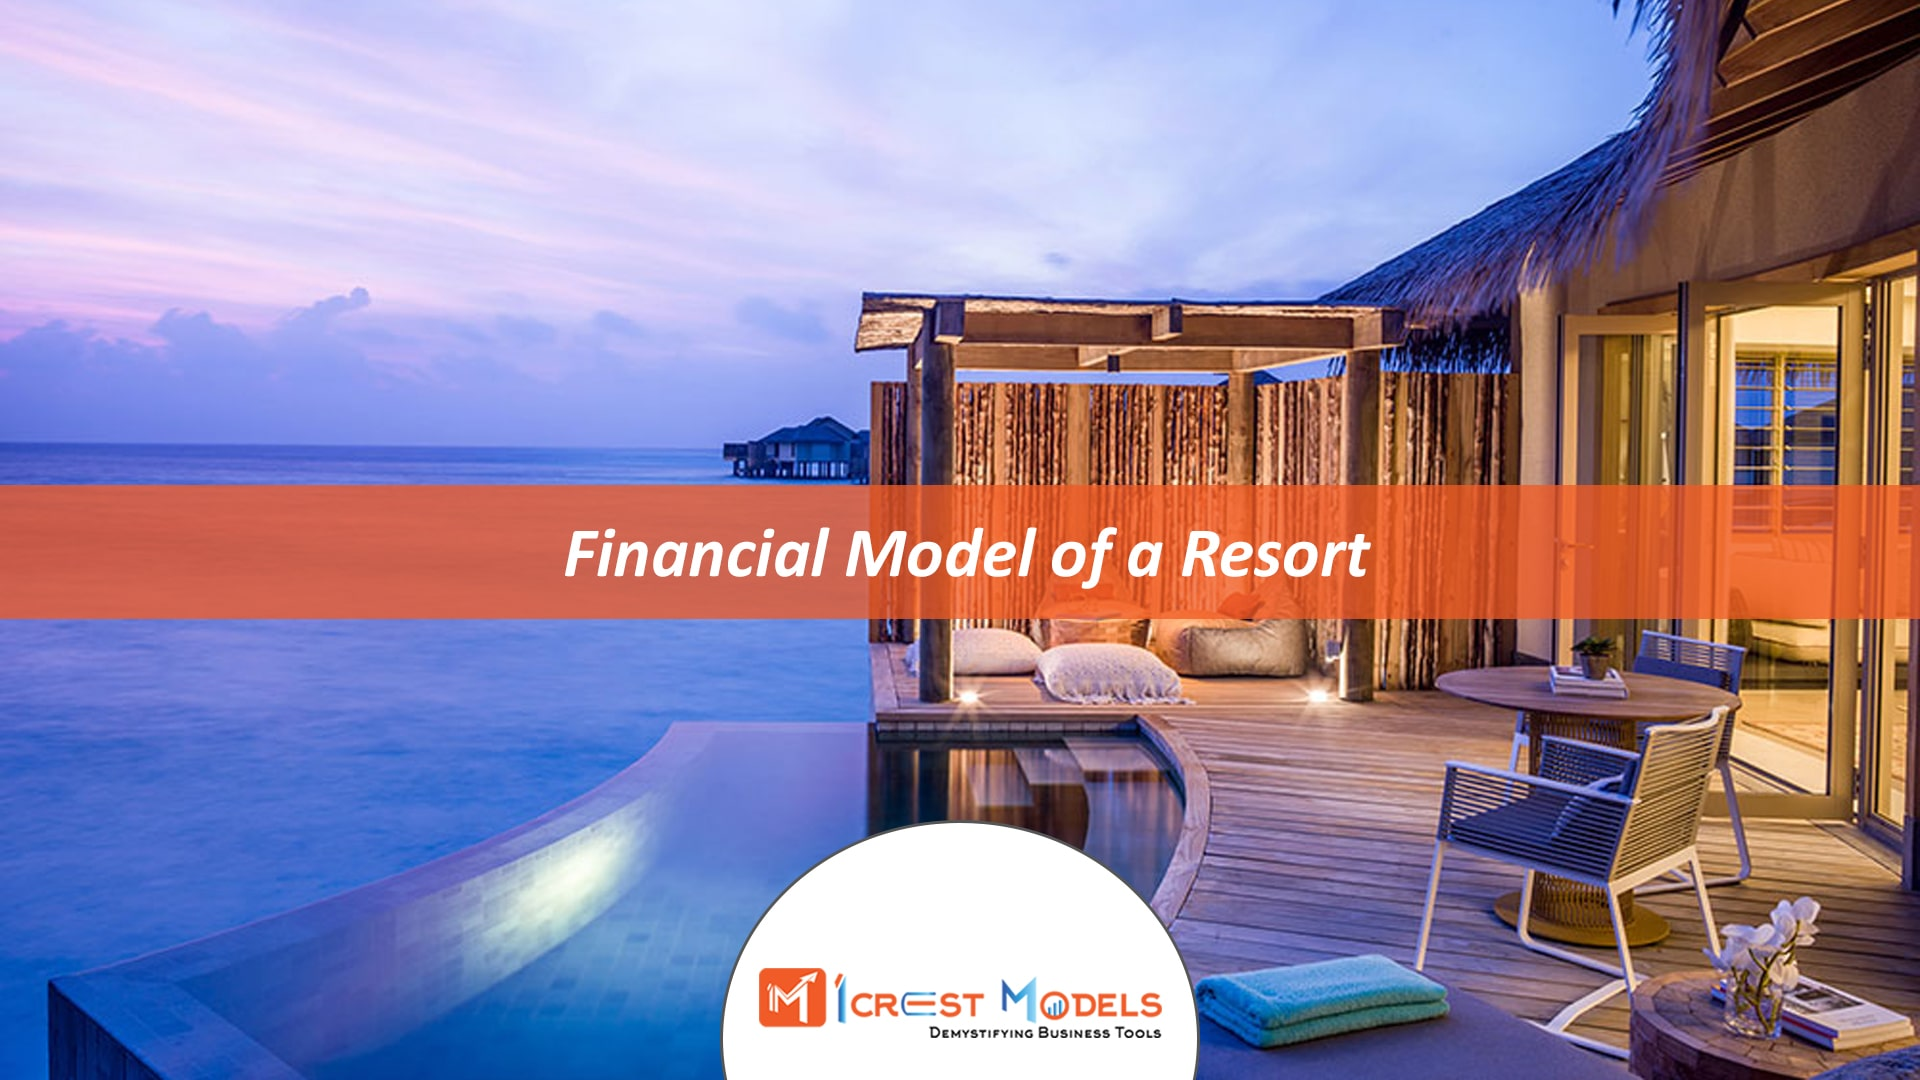 Financial Model of a Resort